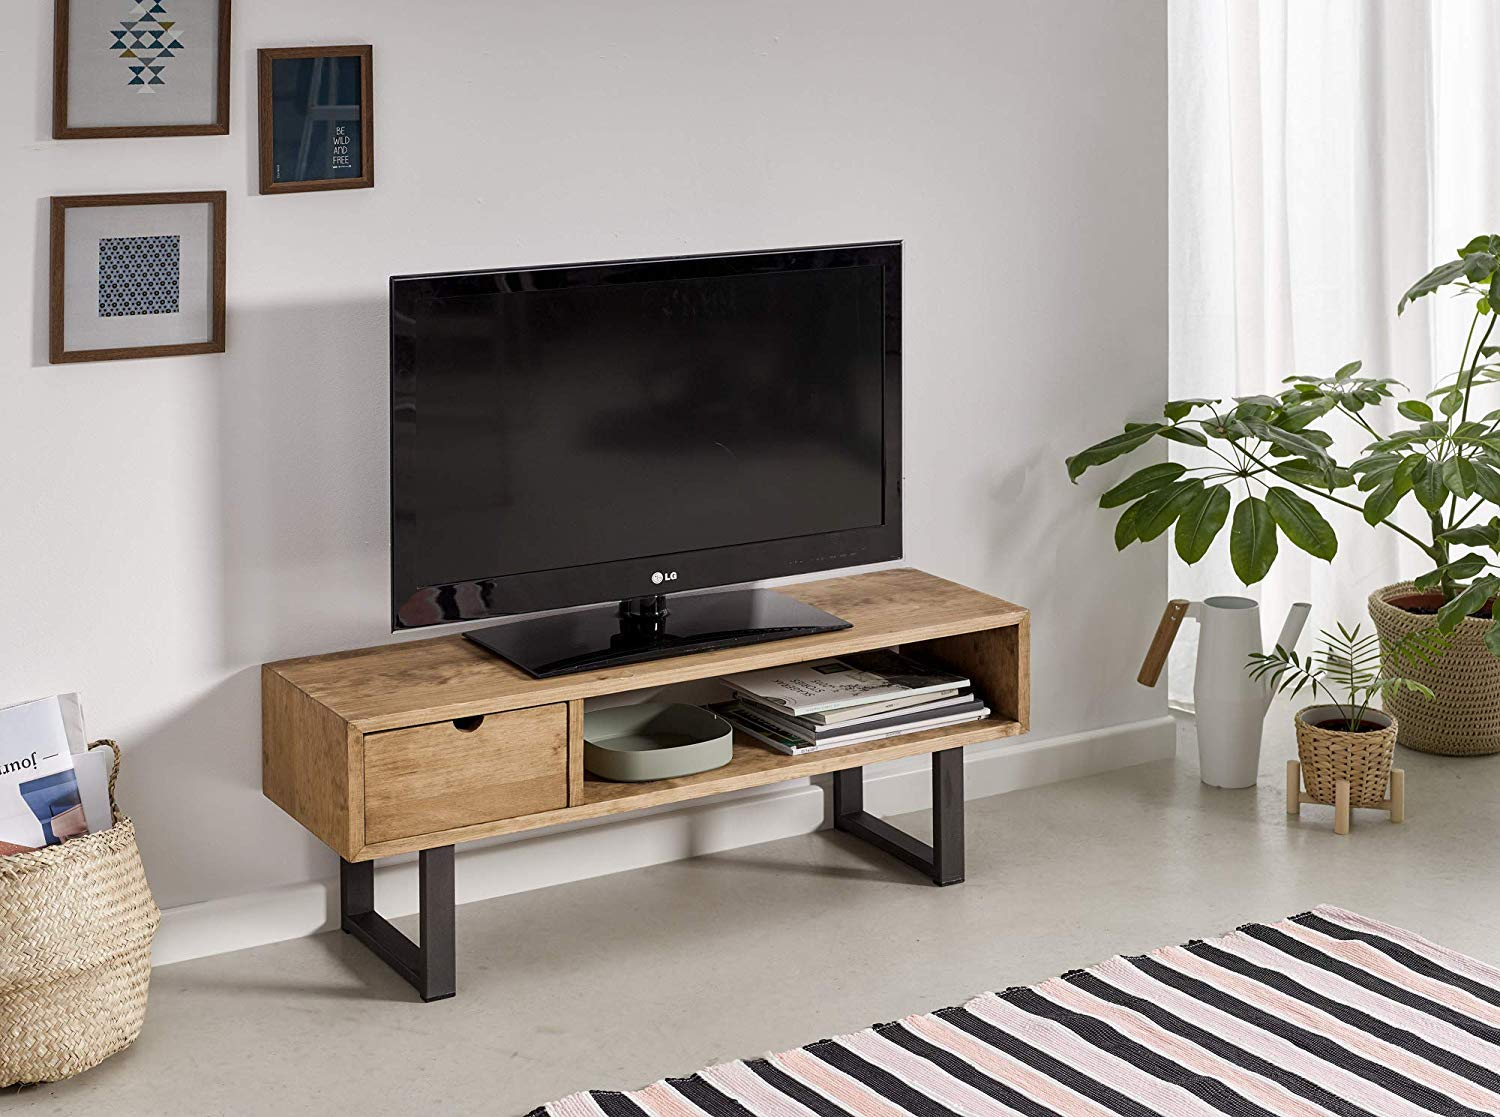 New Meuble Tv Salon En Bois